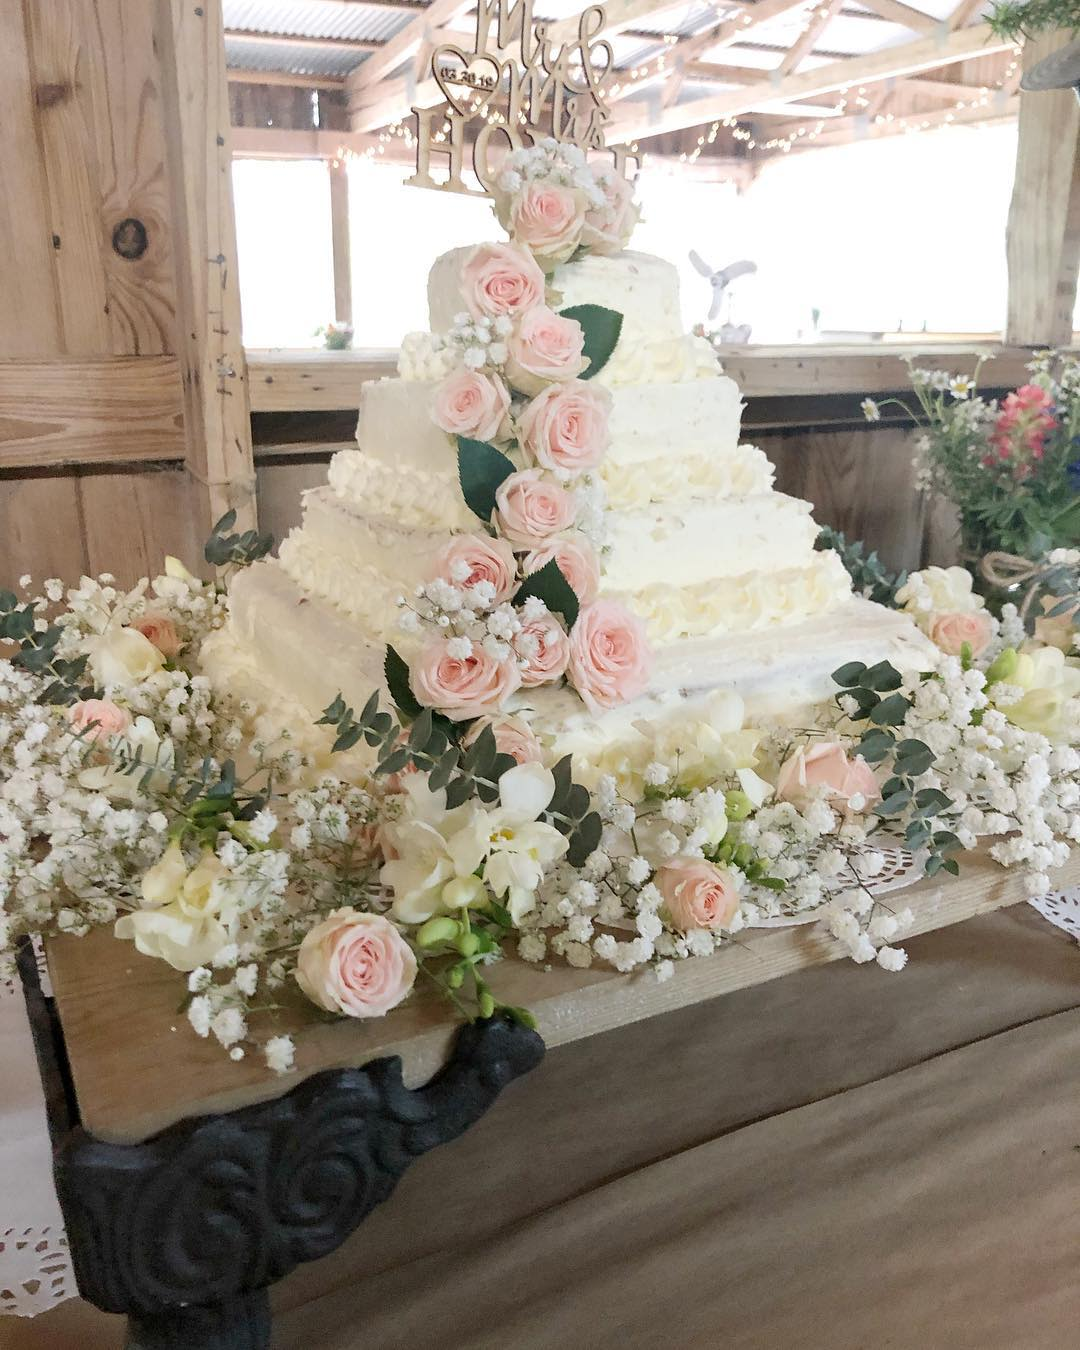 This DIY Costco Wedding Cake Only Costs $50